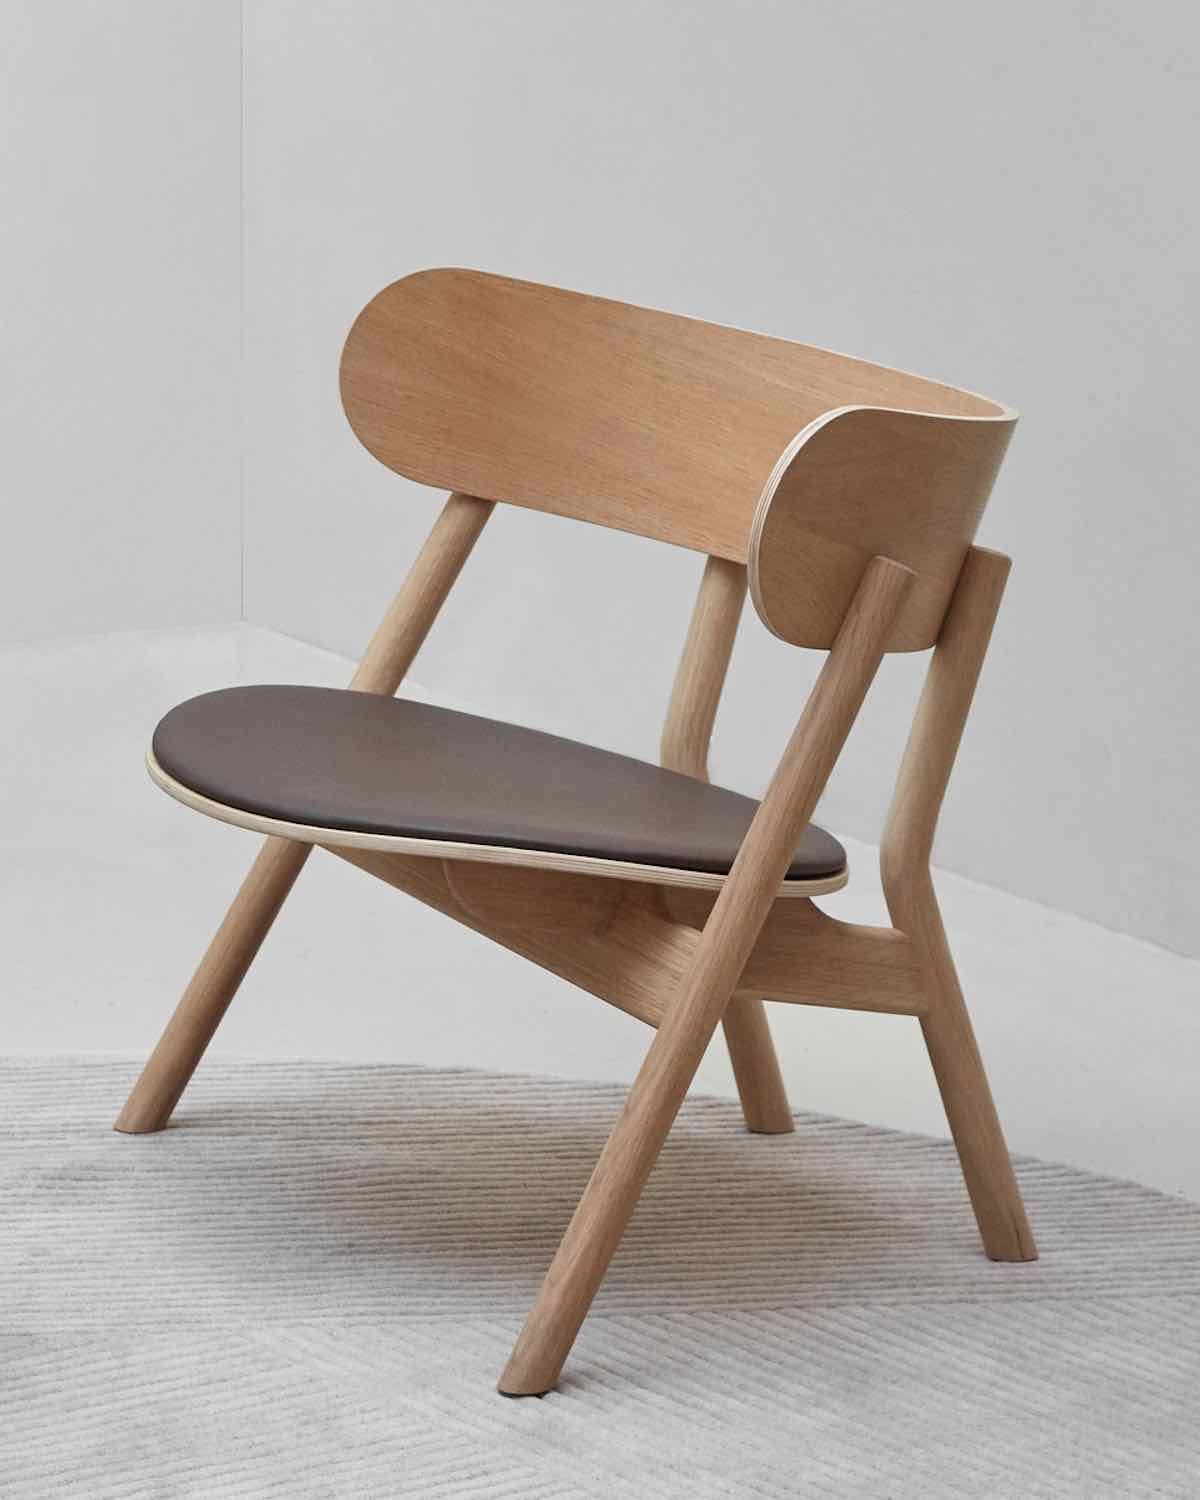 OAKI chair by Northern - Photo by Chris Tonnesen